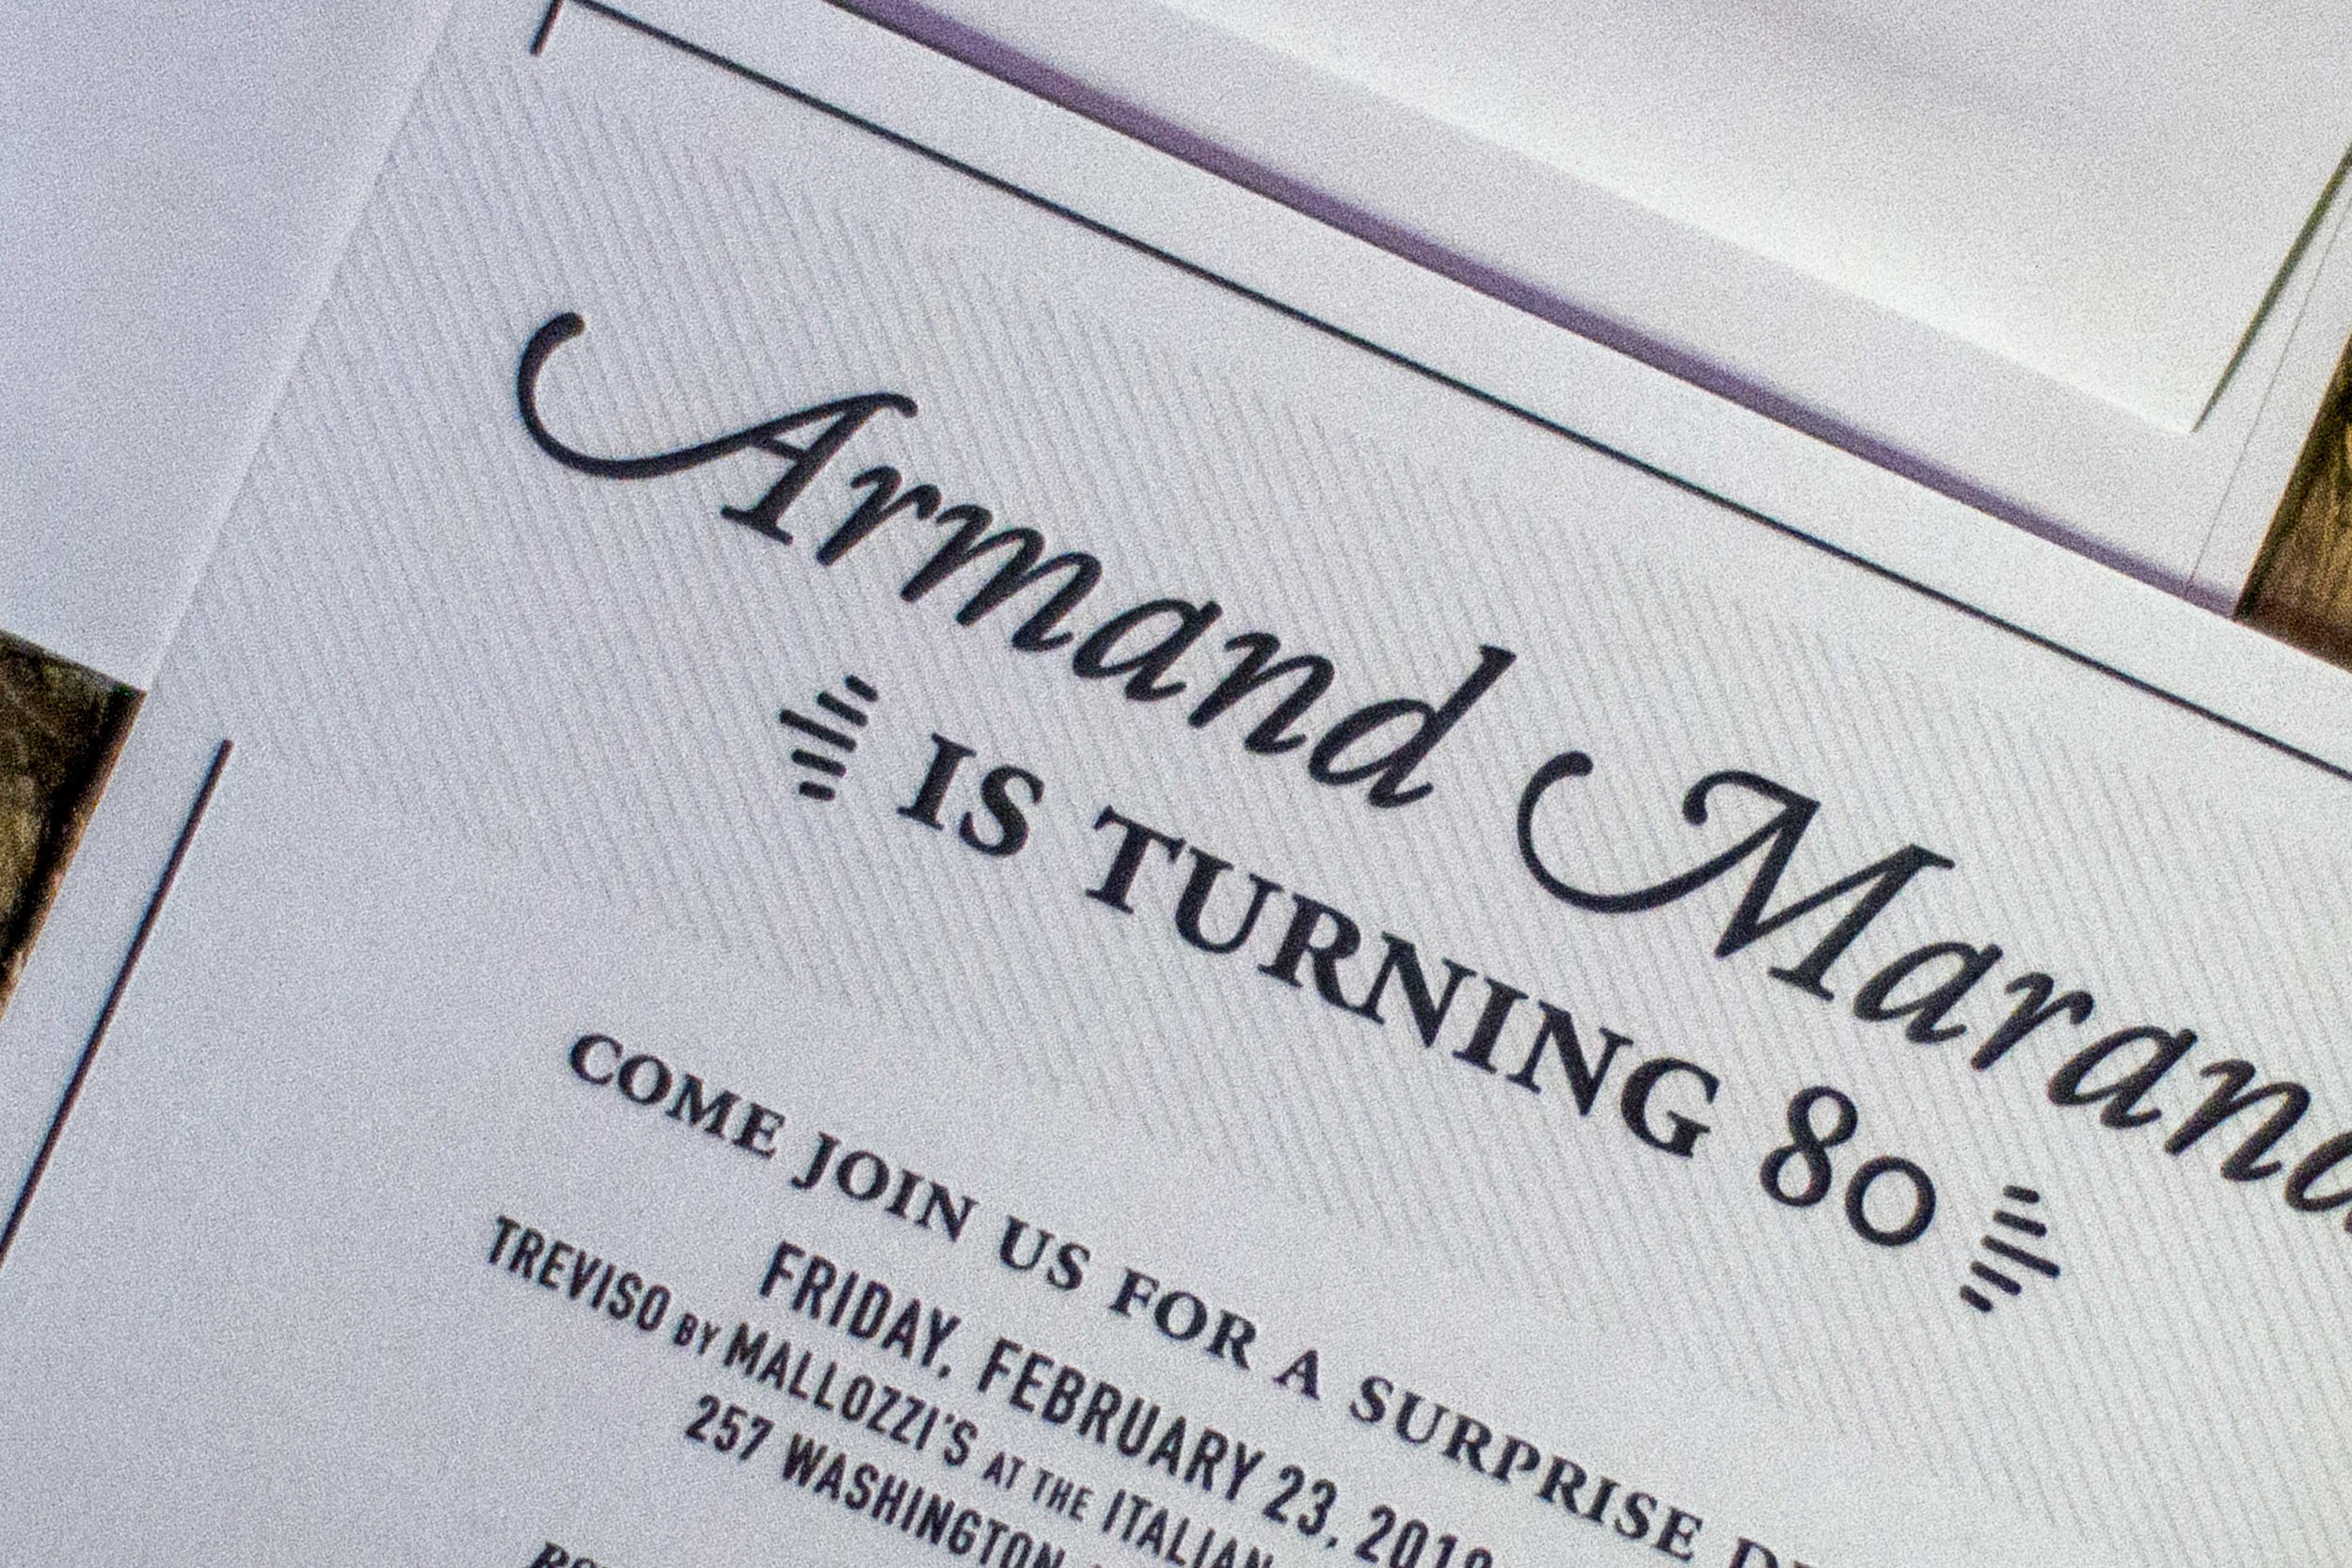 Marando-80-Birthday-Invite_Detail.jpg